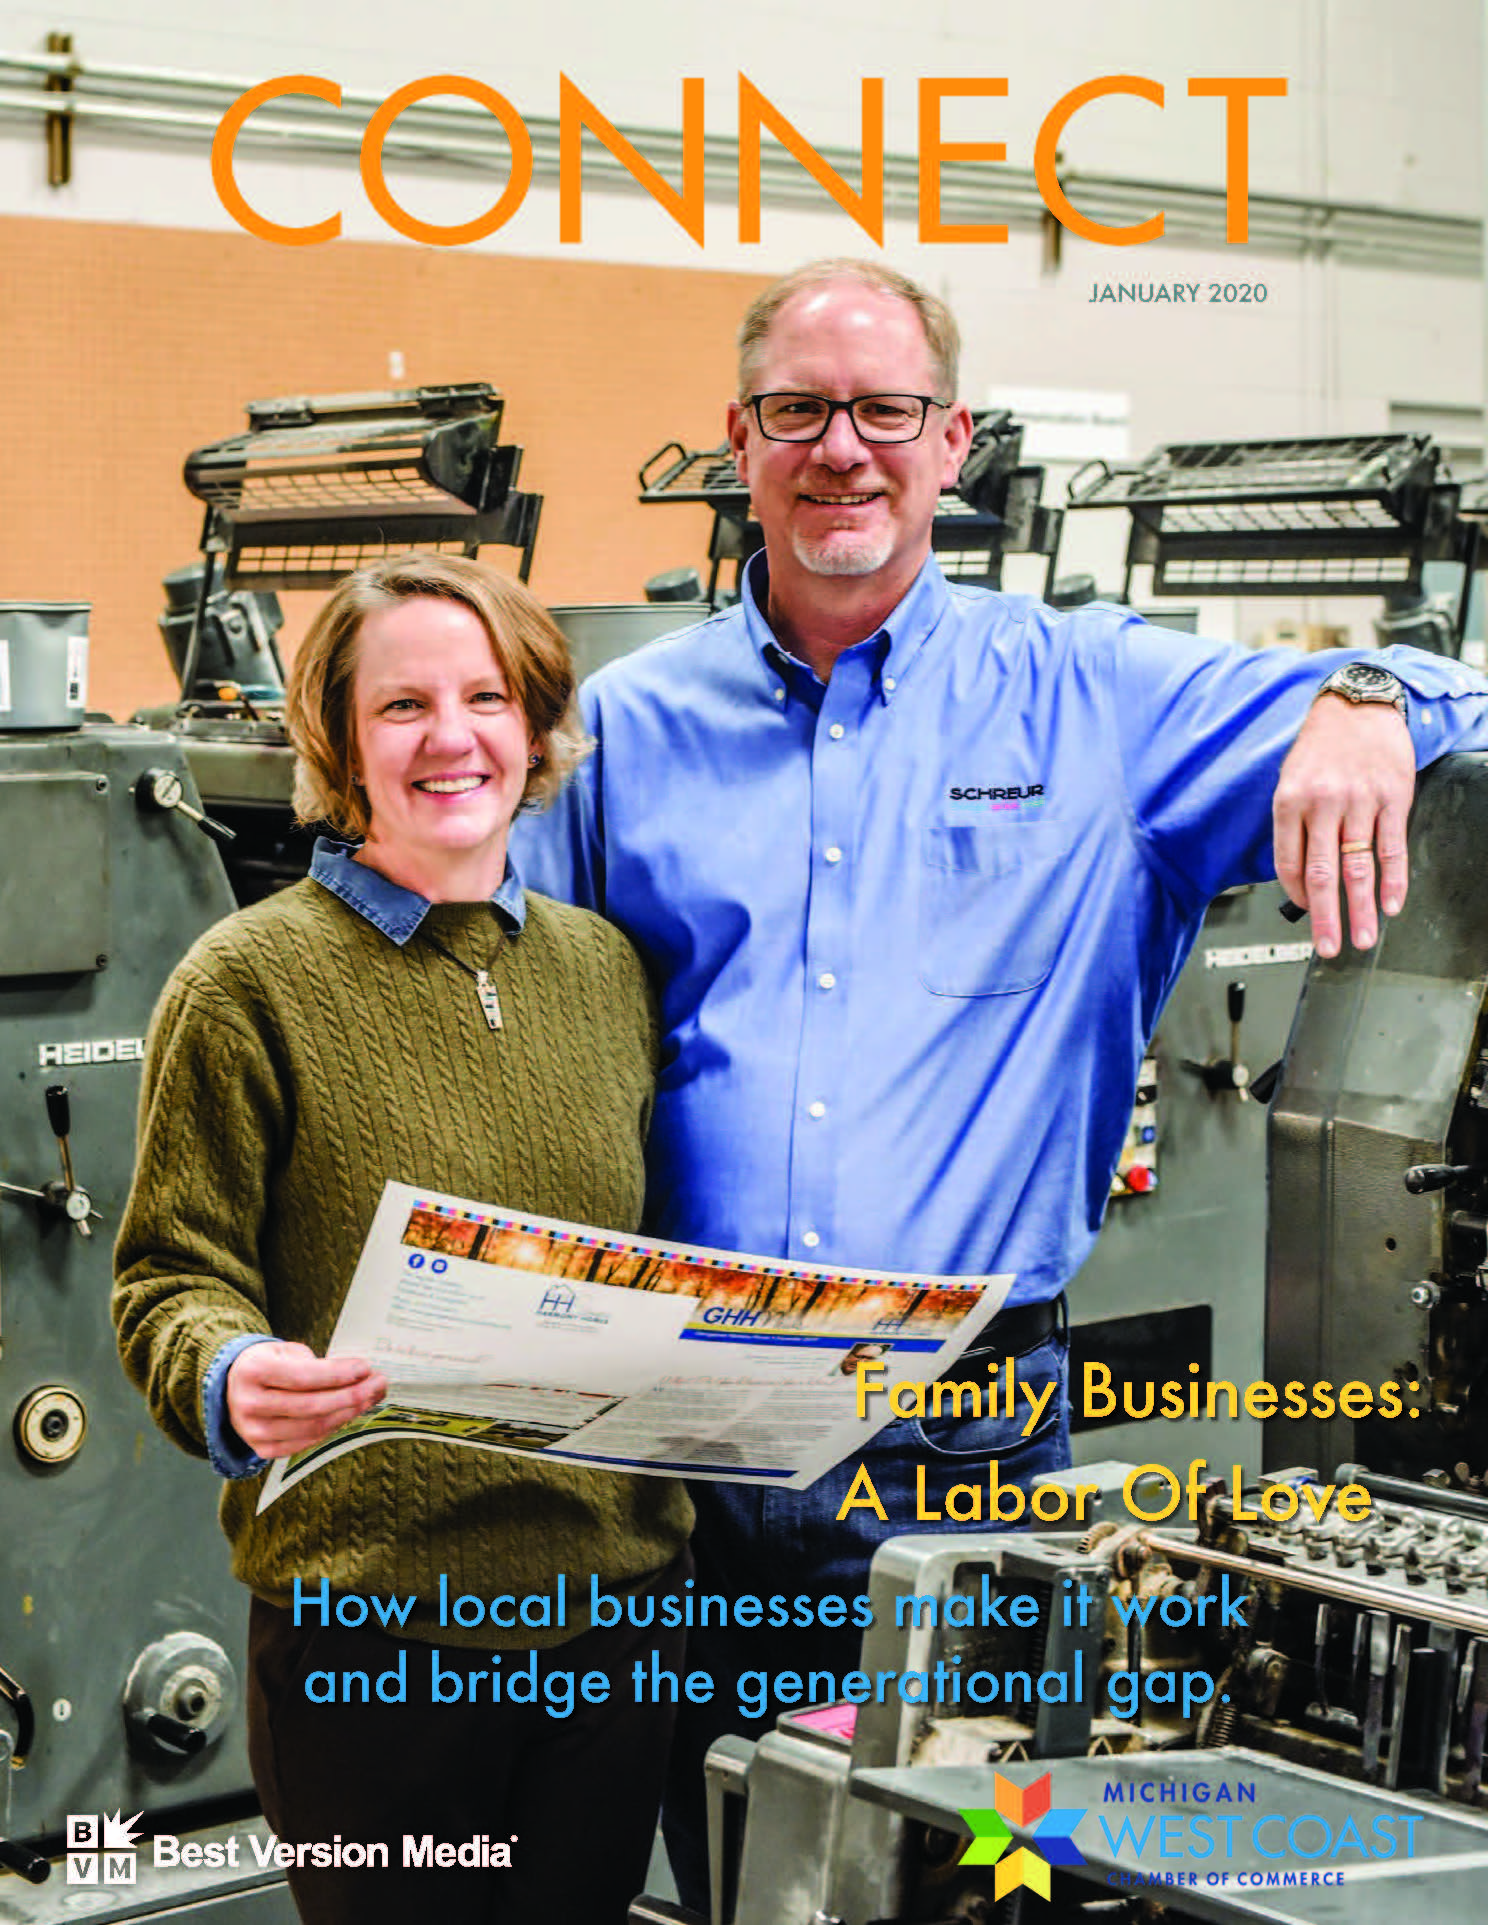 Tim and MaryJane Schreur of Schreur Printing